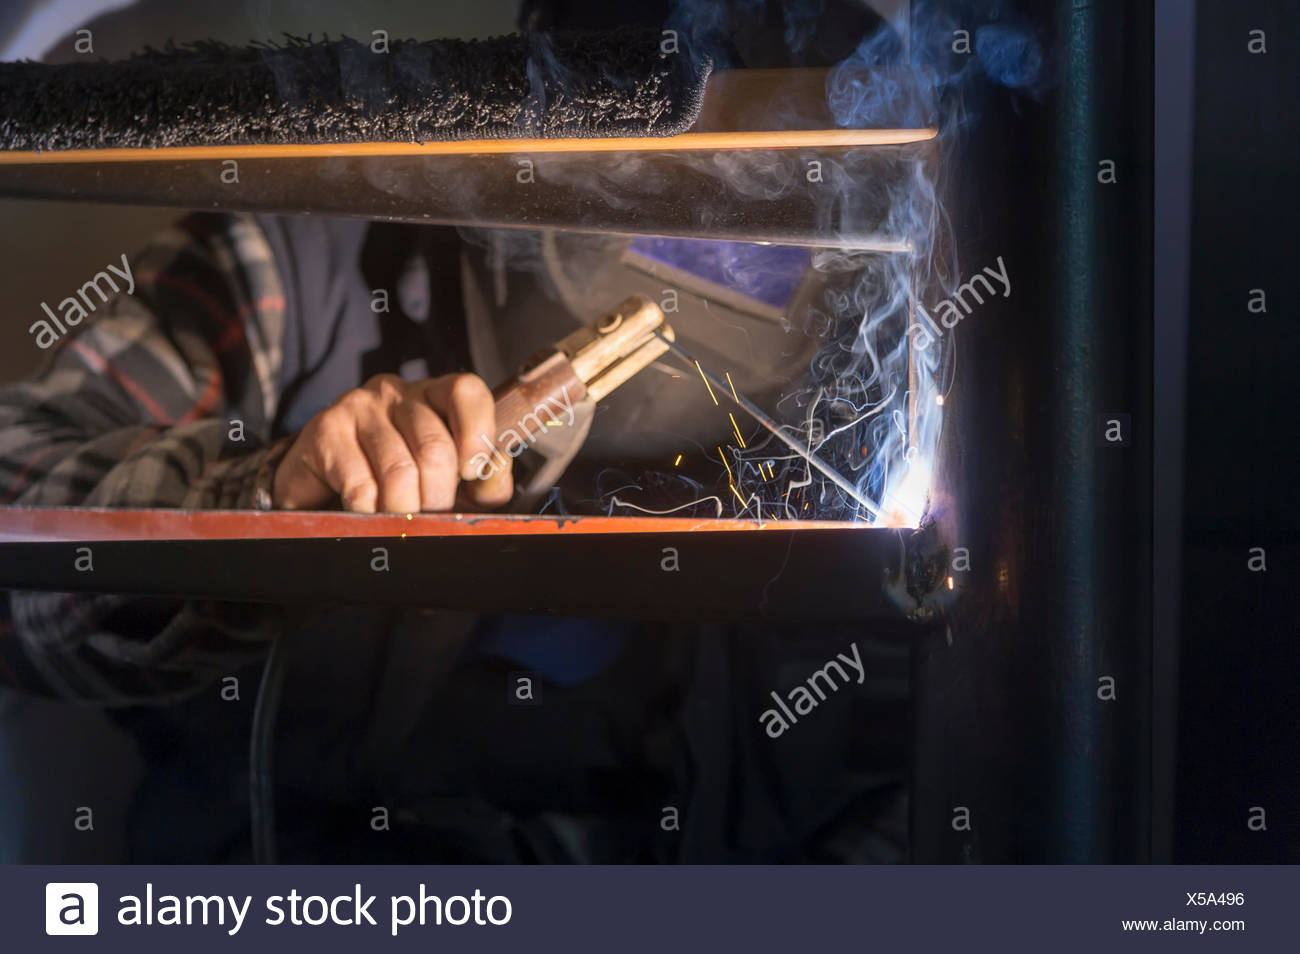 Man working on spiral staircase with electric torch - Stock Image